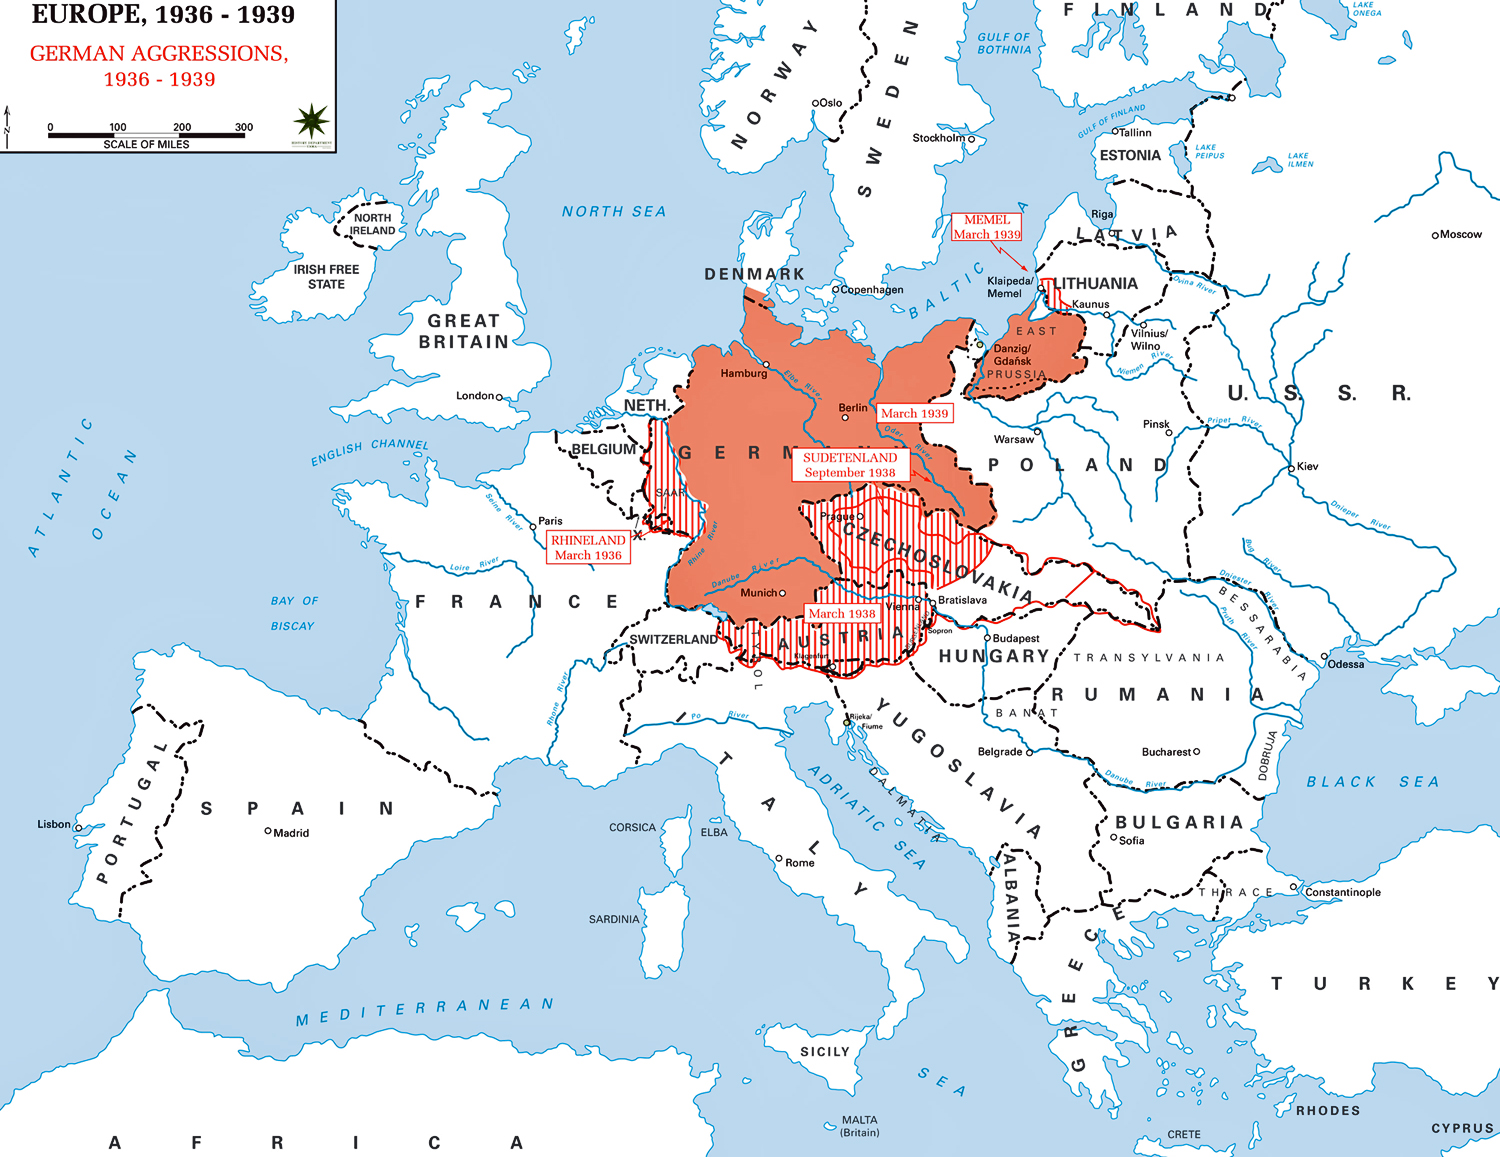 wwii timelines map of europe 1936 1939 german aggressions